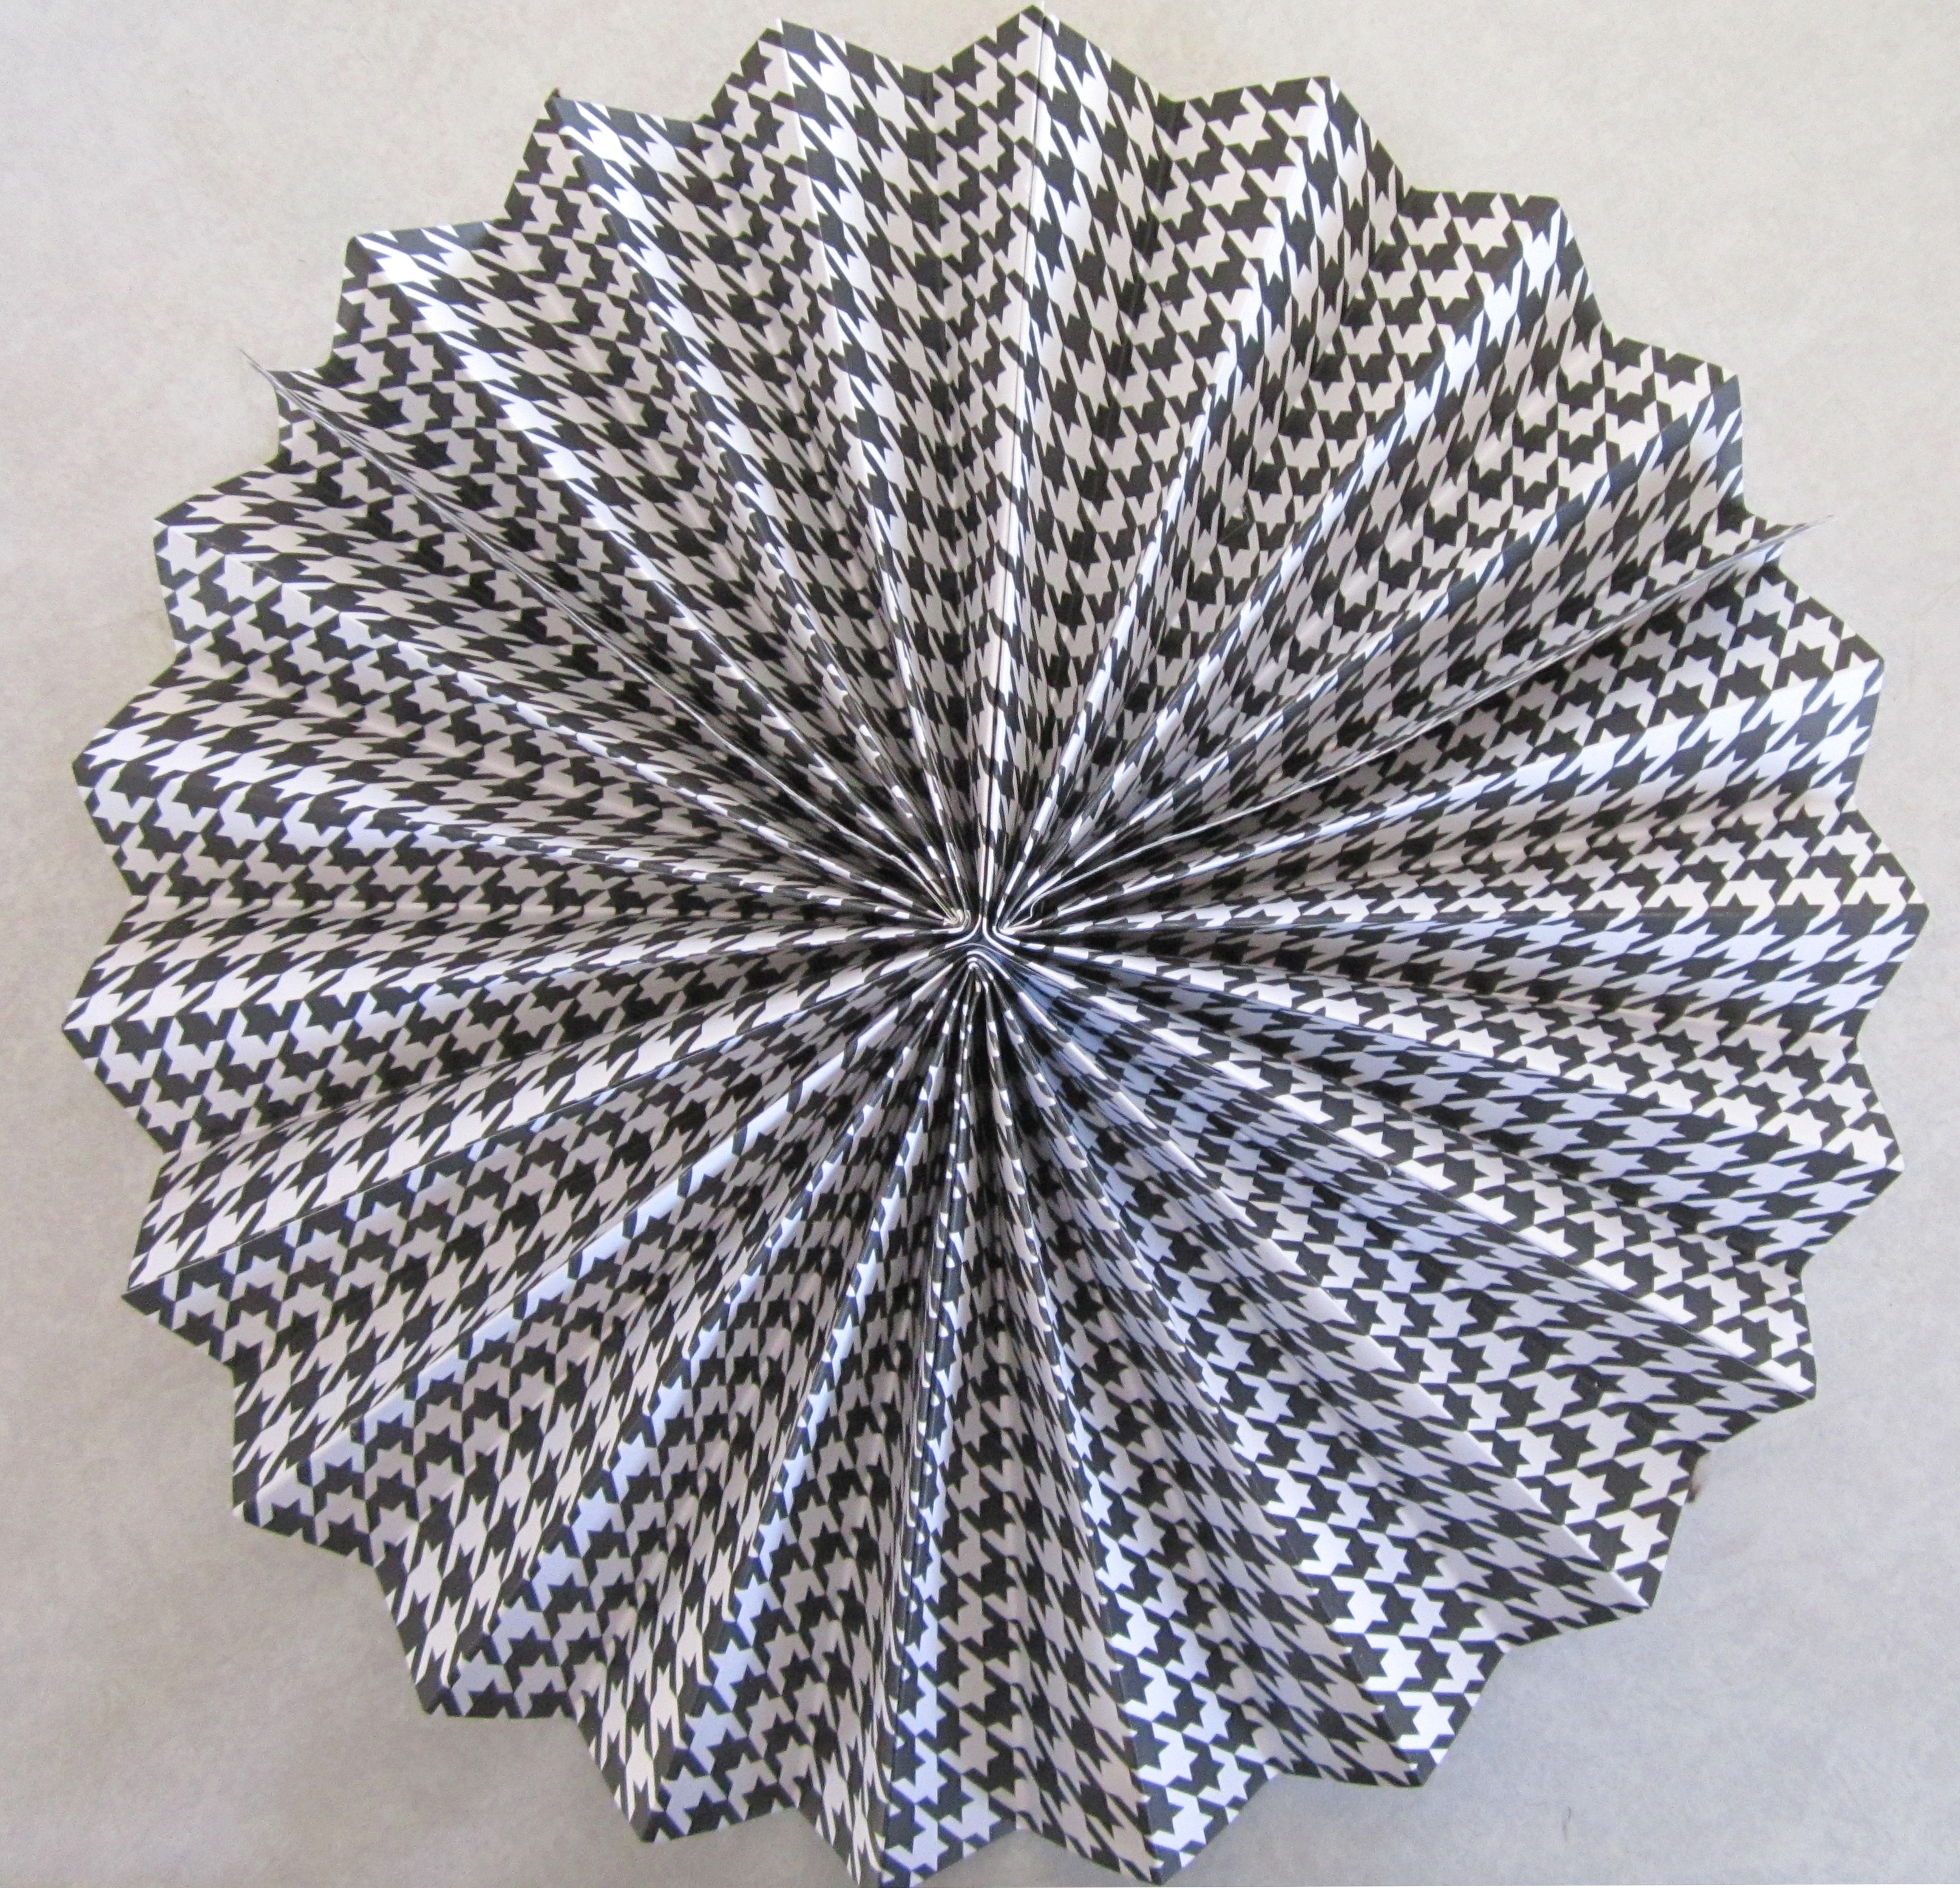 How to make rosettes out of paper - Love The Variety Of Fan Sizes And Color Of Patterns